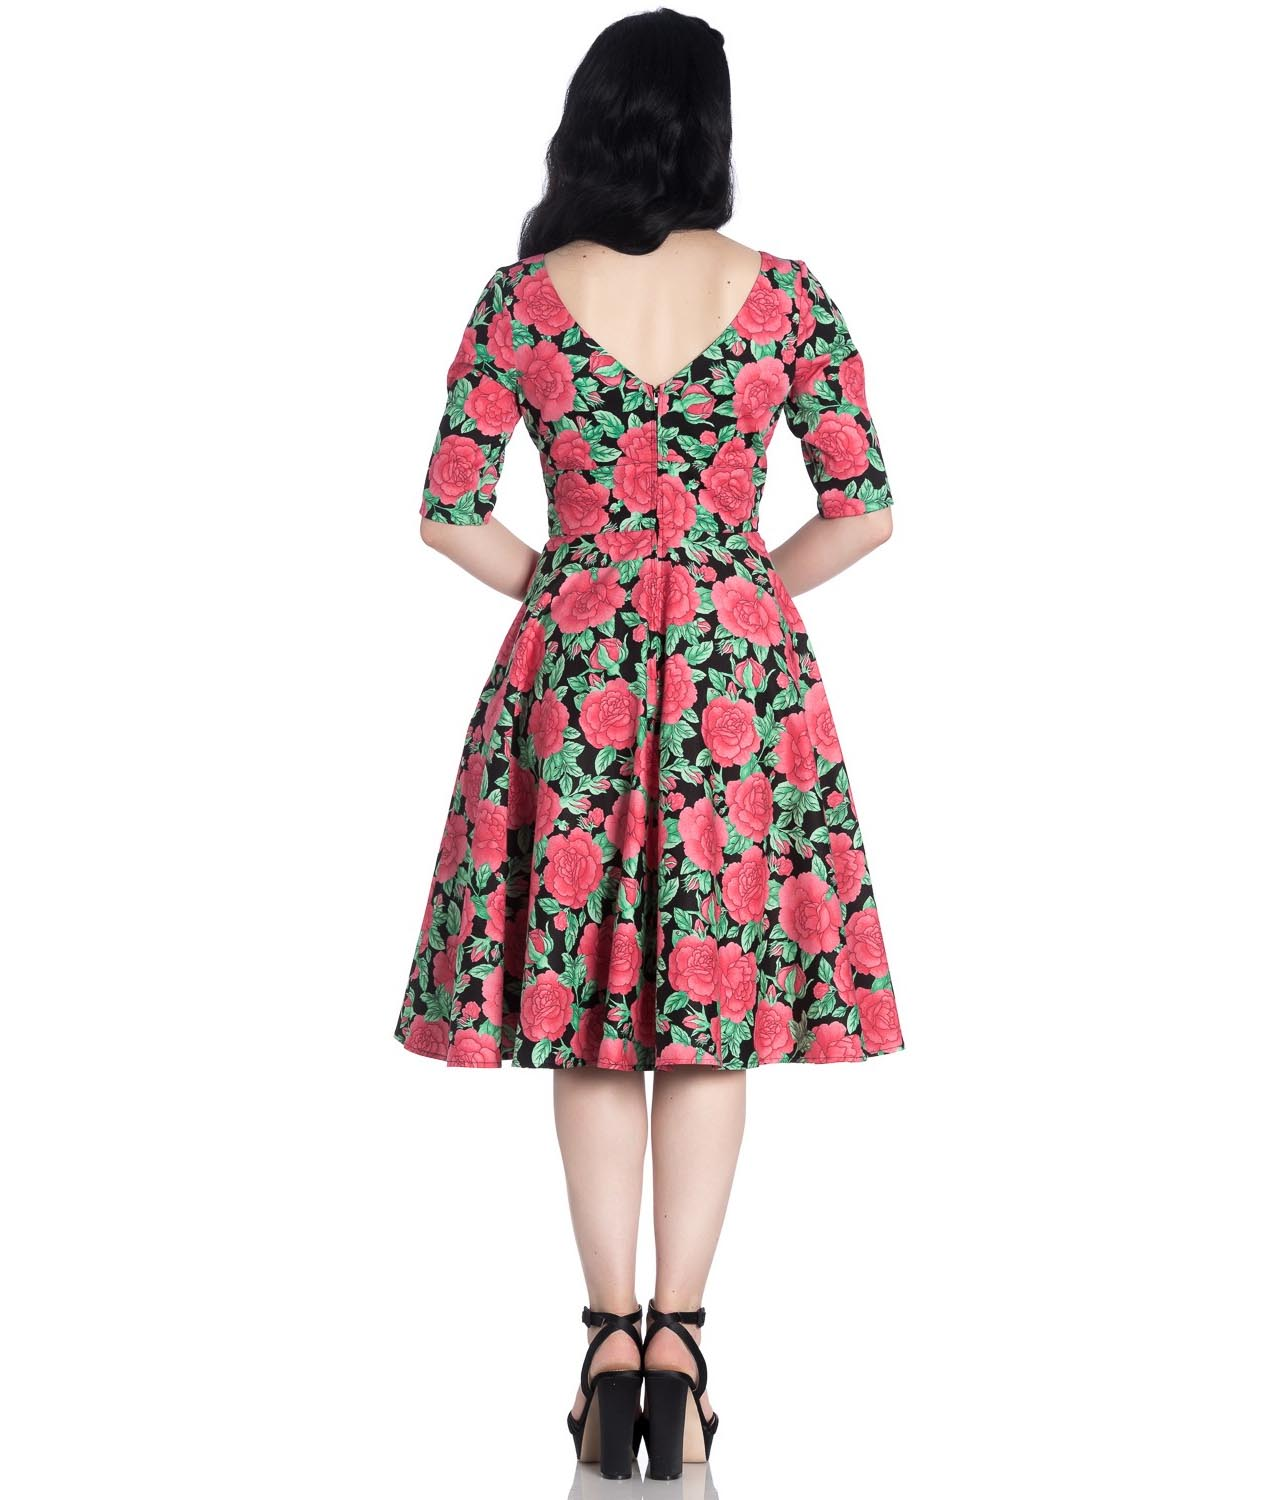 Hell-Bunny-40s-50s-Black-Pin-Up-Vintage-Dress-DARCY-Pink-Roses-All-Sizes thumbnail 5